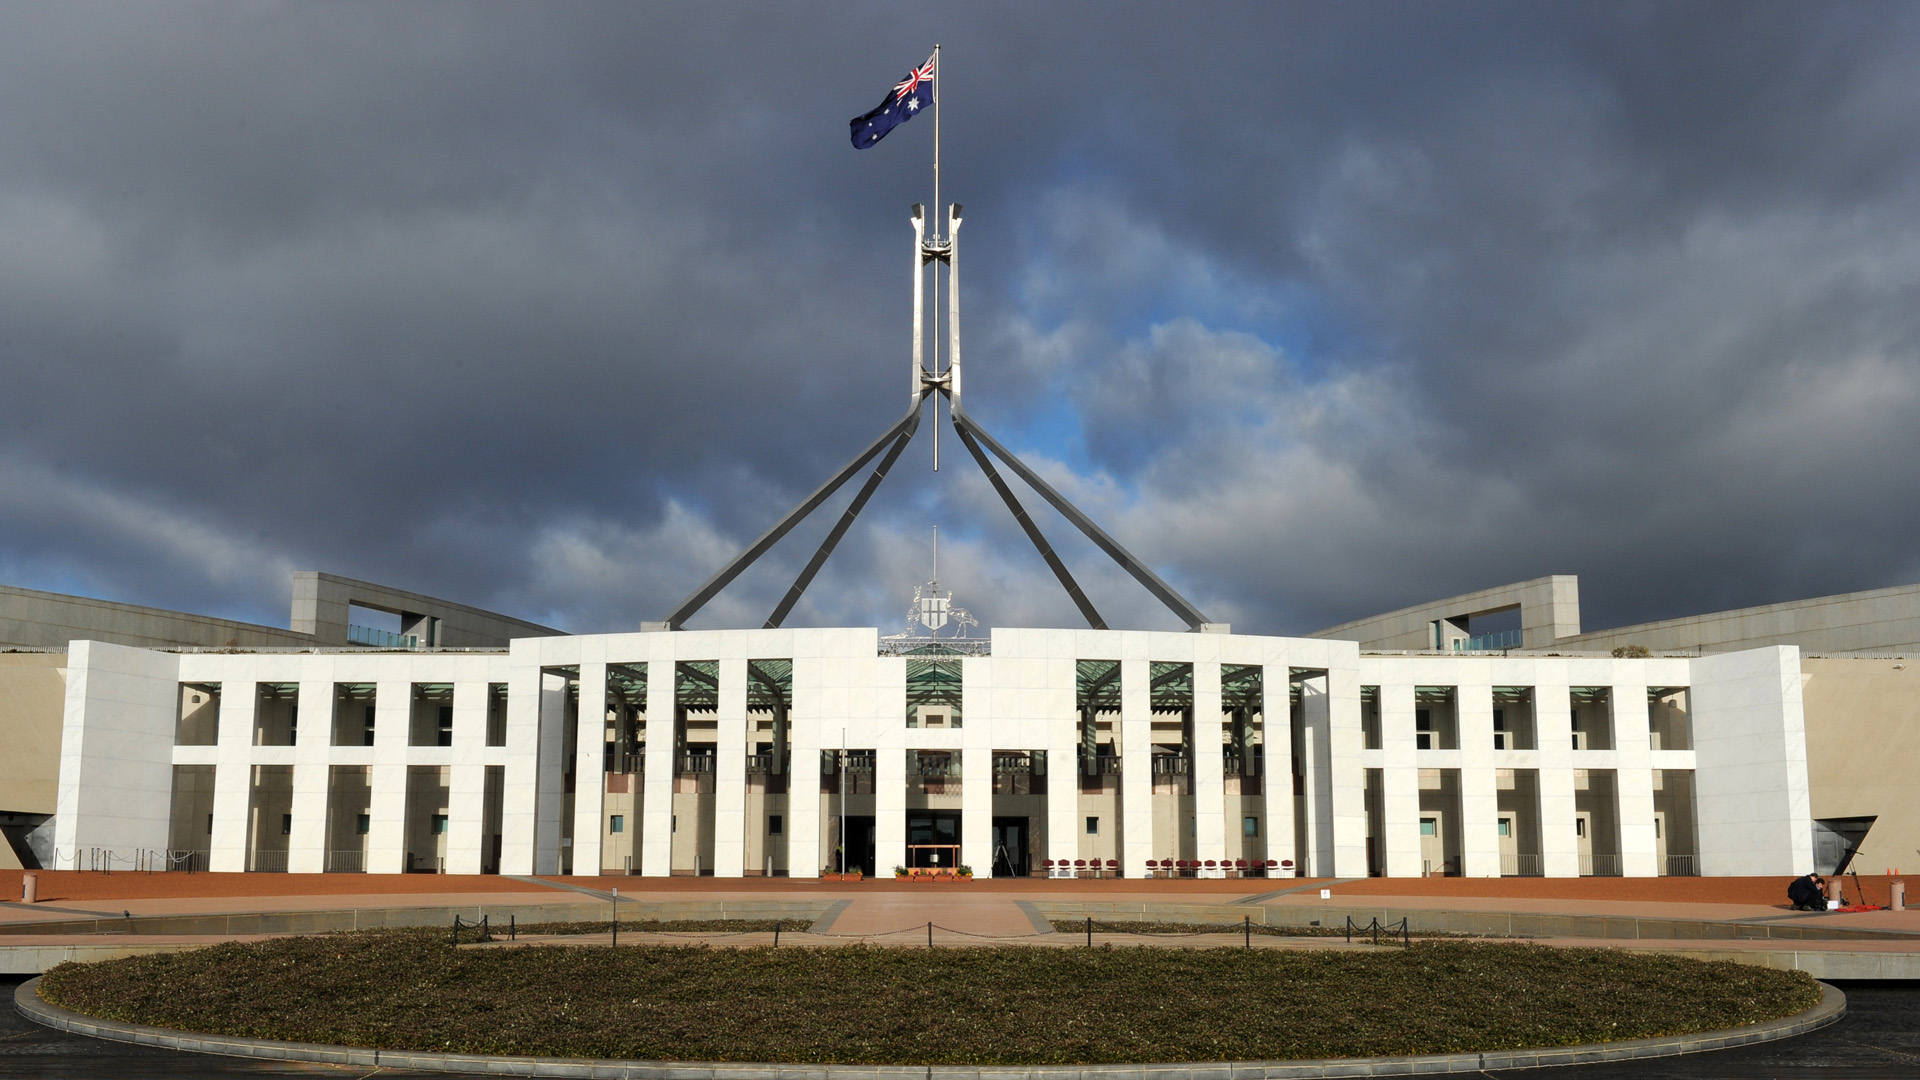 The Australian national flag flies over Parliament House in Canberra on June 20, 2011. (Credit: TORSTEN BLACKWOOD/AFP/Getty Images)